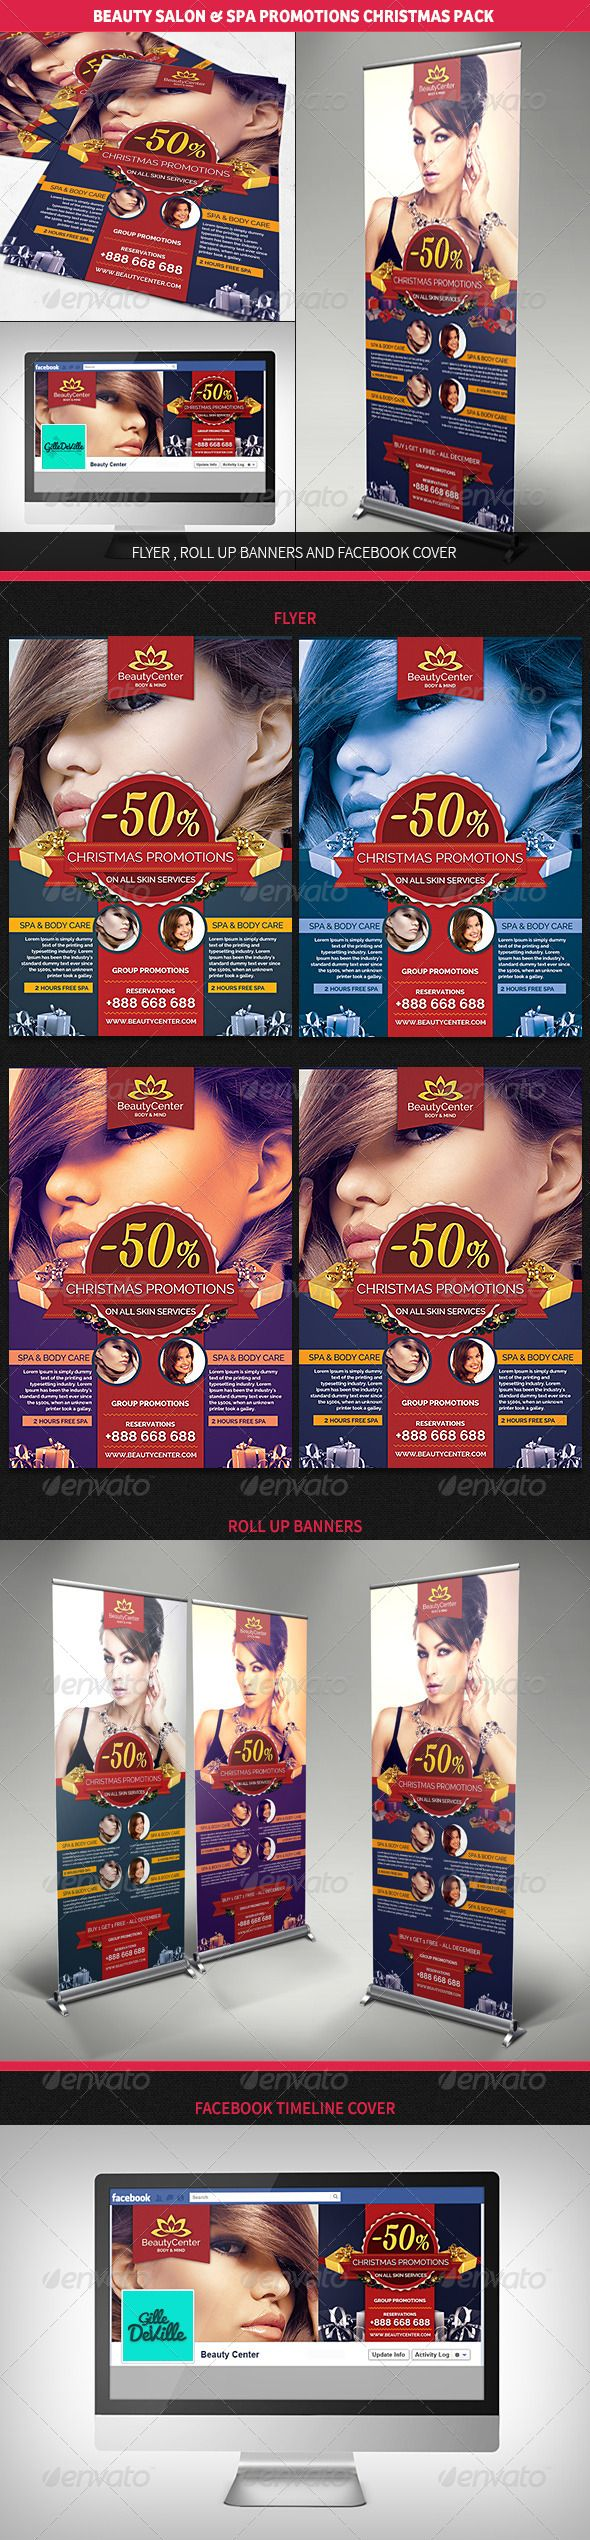 best images about christmas flyers christmas beauty center spa christmas promotions pack